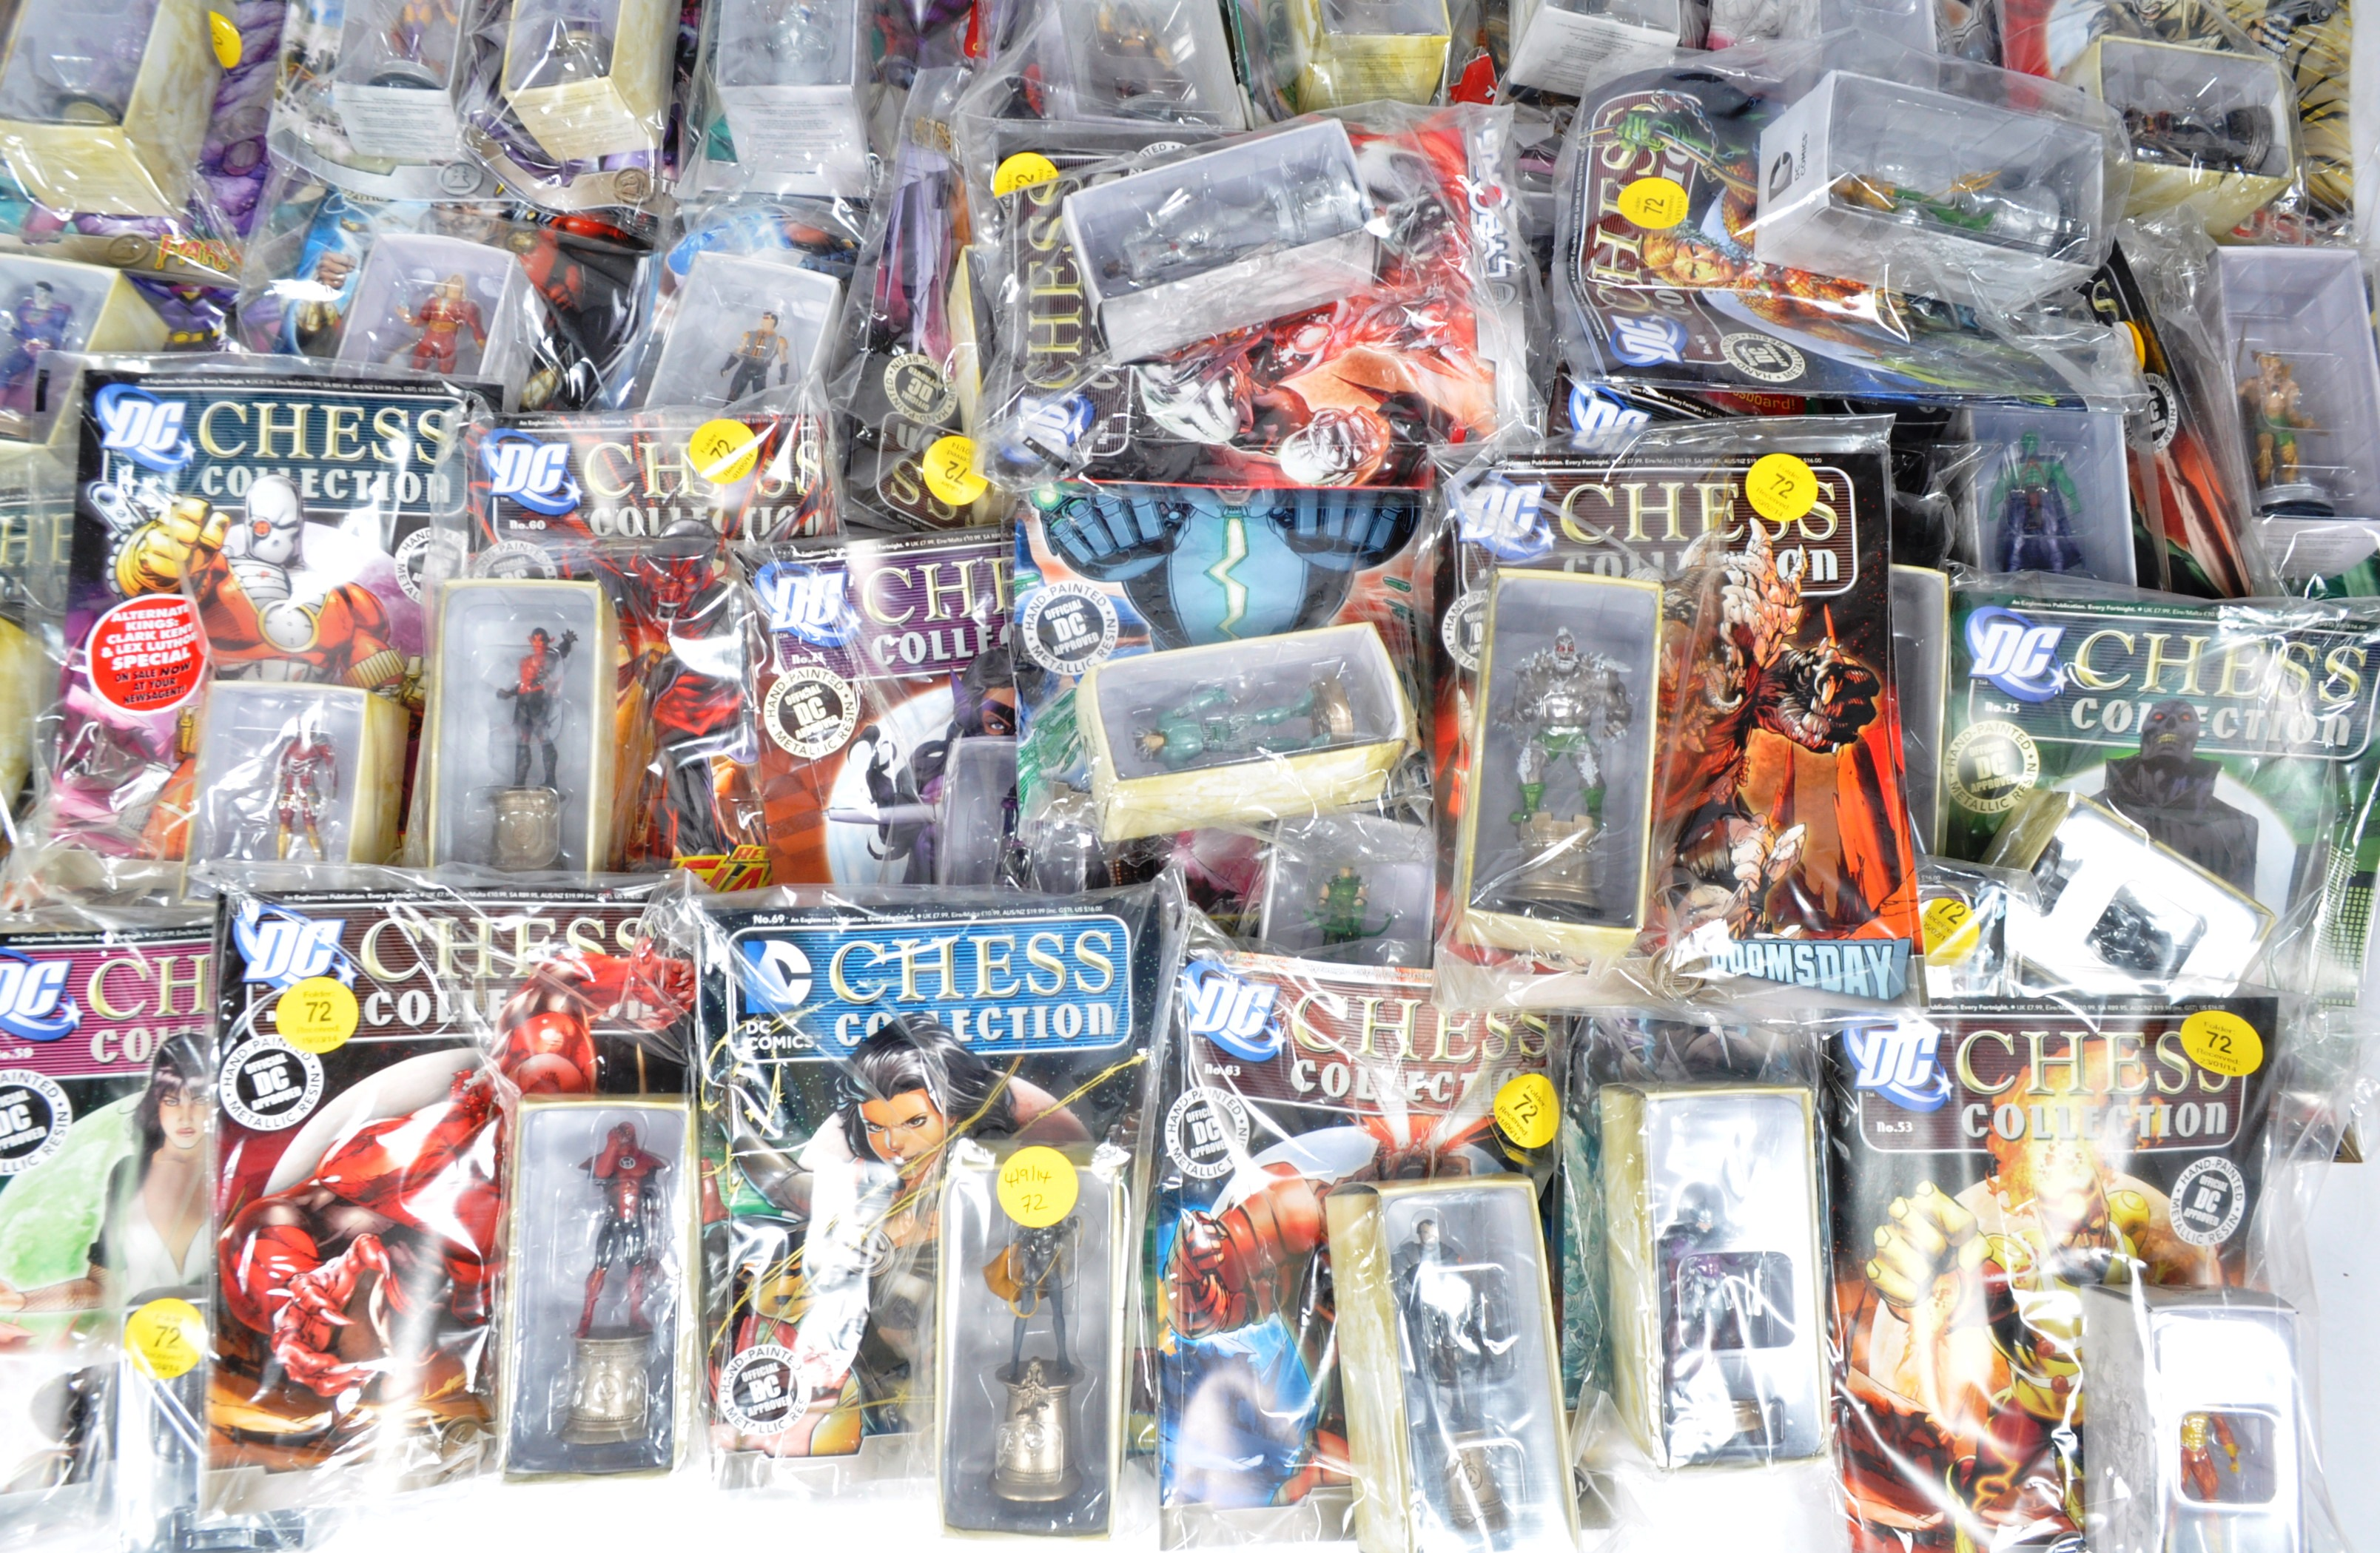 LARGE COLLECTION OF ASSORTED DC COMICS COLLECTIBLE CHESS PIECES - Image 3 of 6